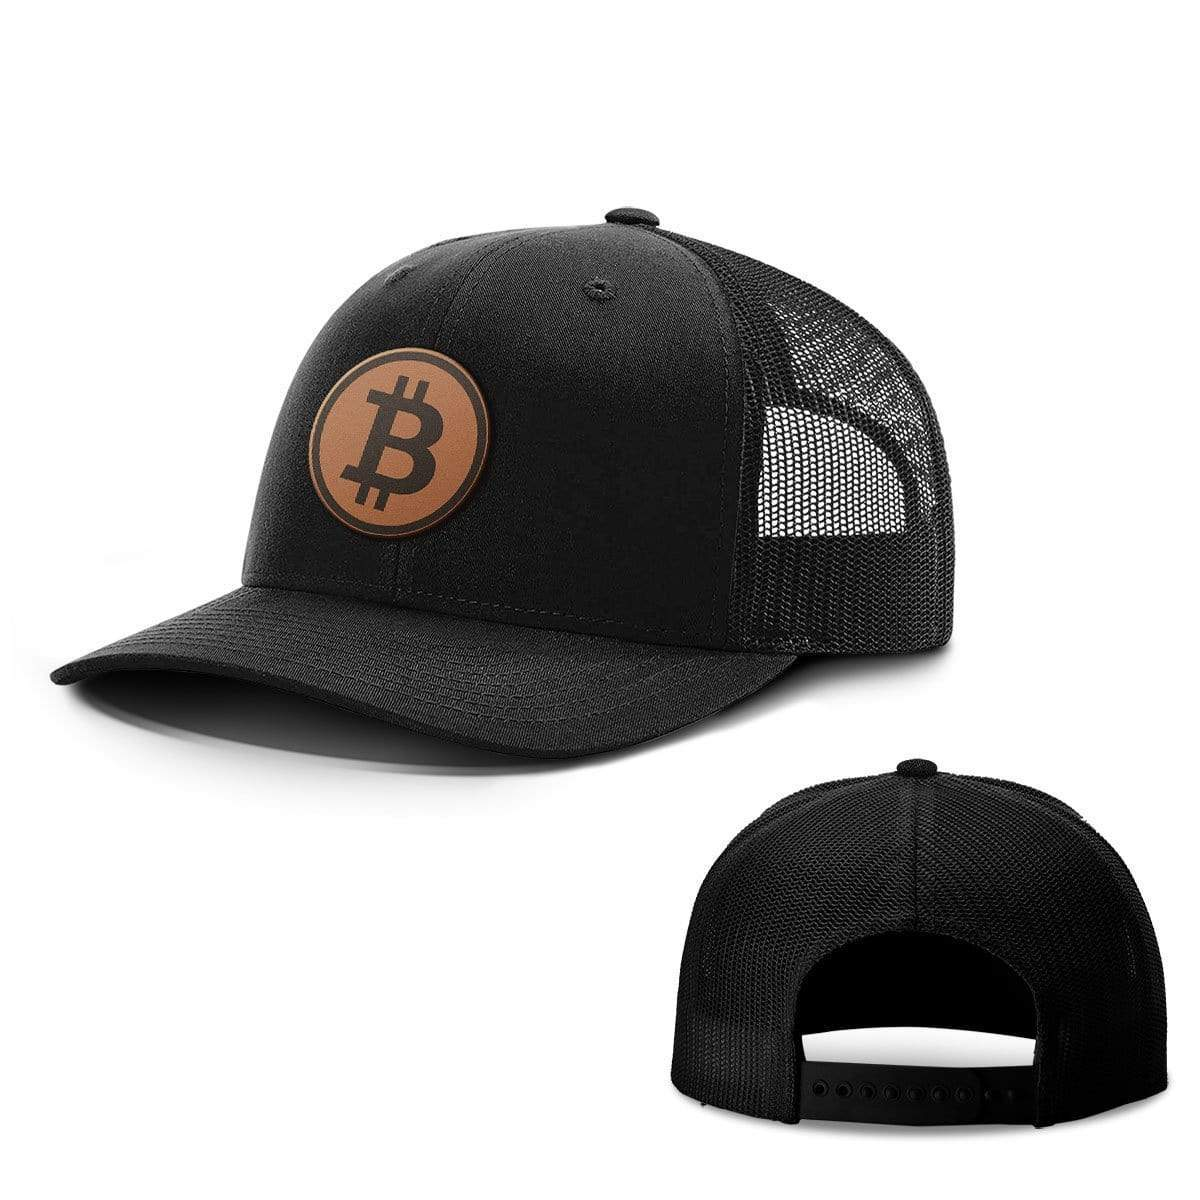 SunFrog-Busted Hats Snapback / Full Black / One Size Bitcoin Leather Patch Hats